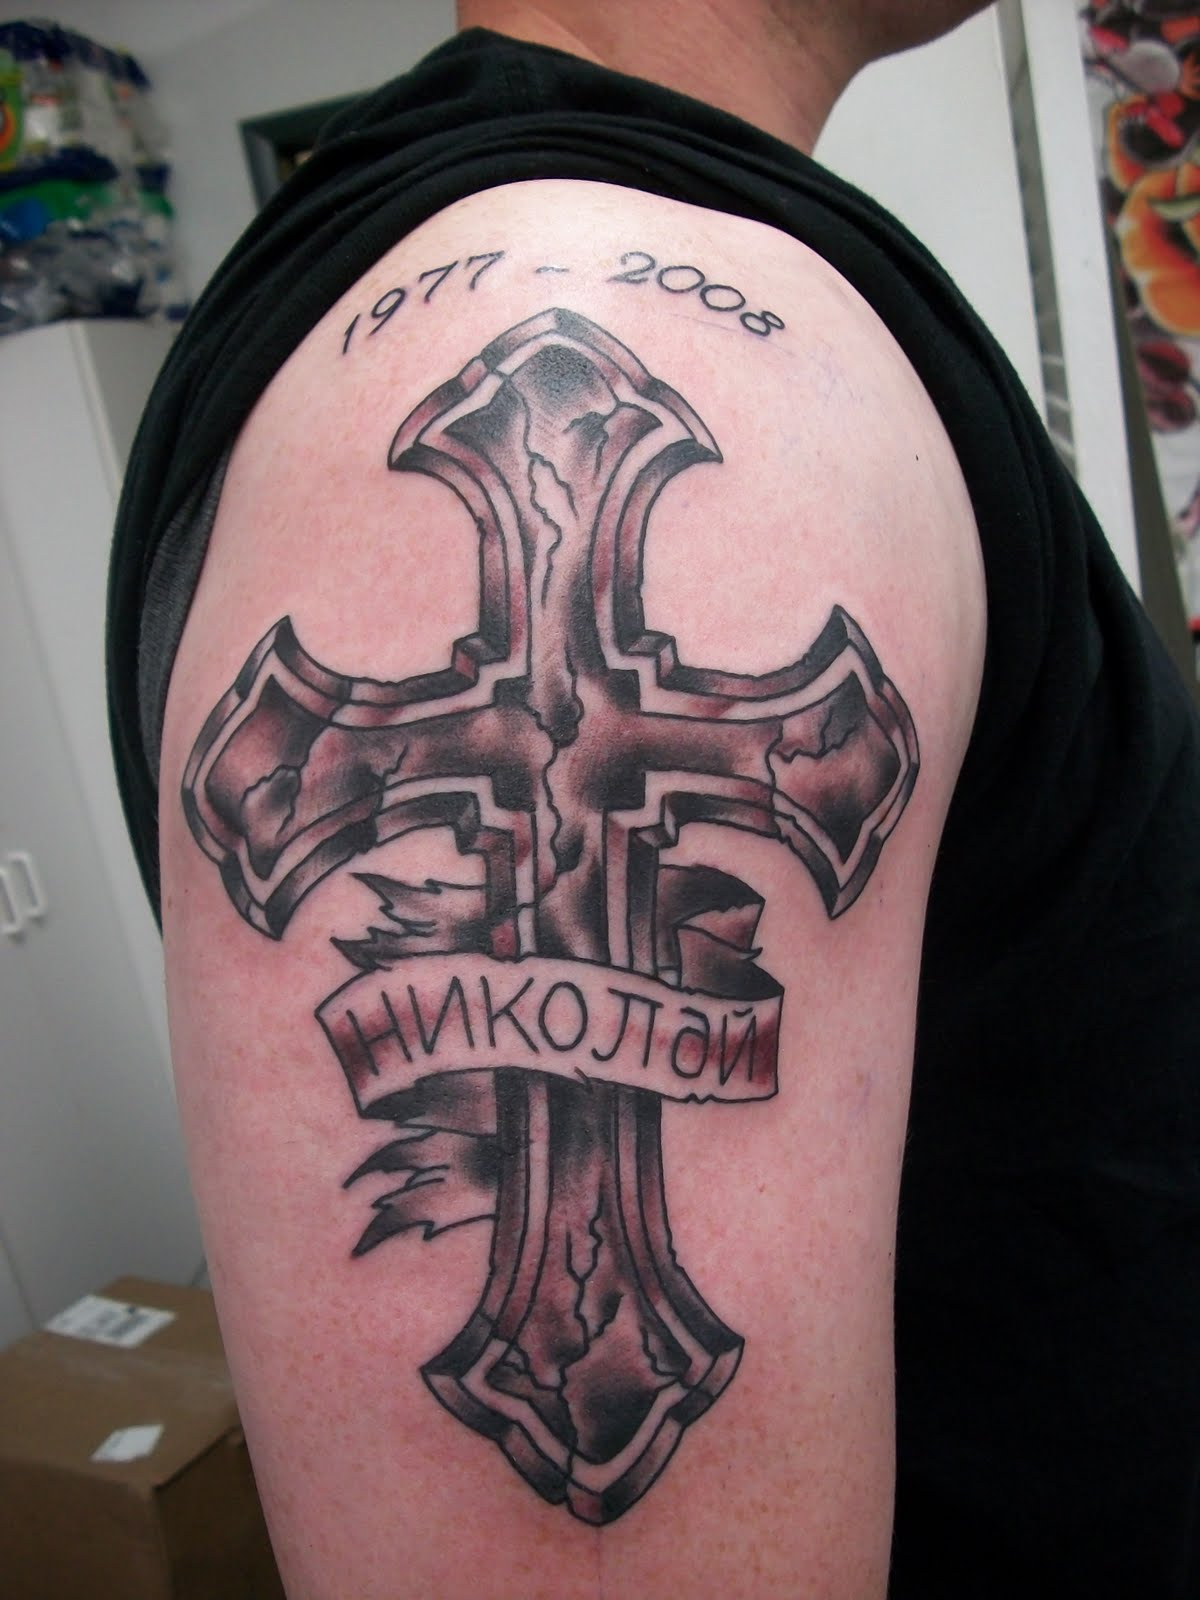 Rip tattoos designs ideas and meaning tattoos for you for Male tattoo ideas